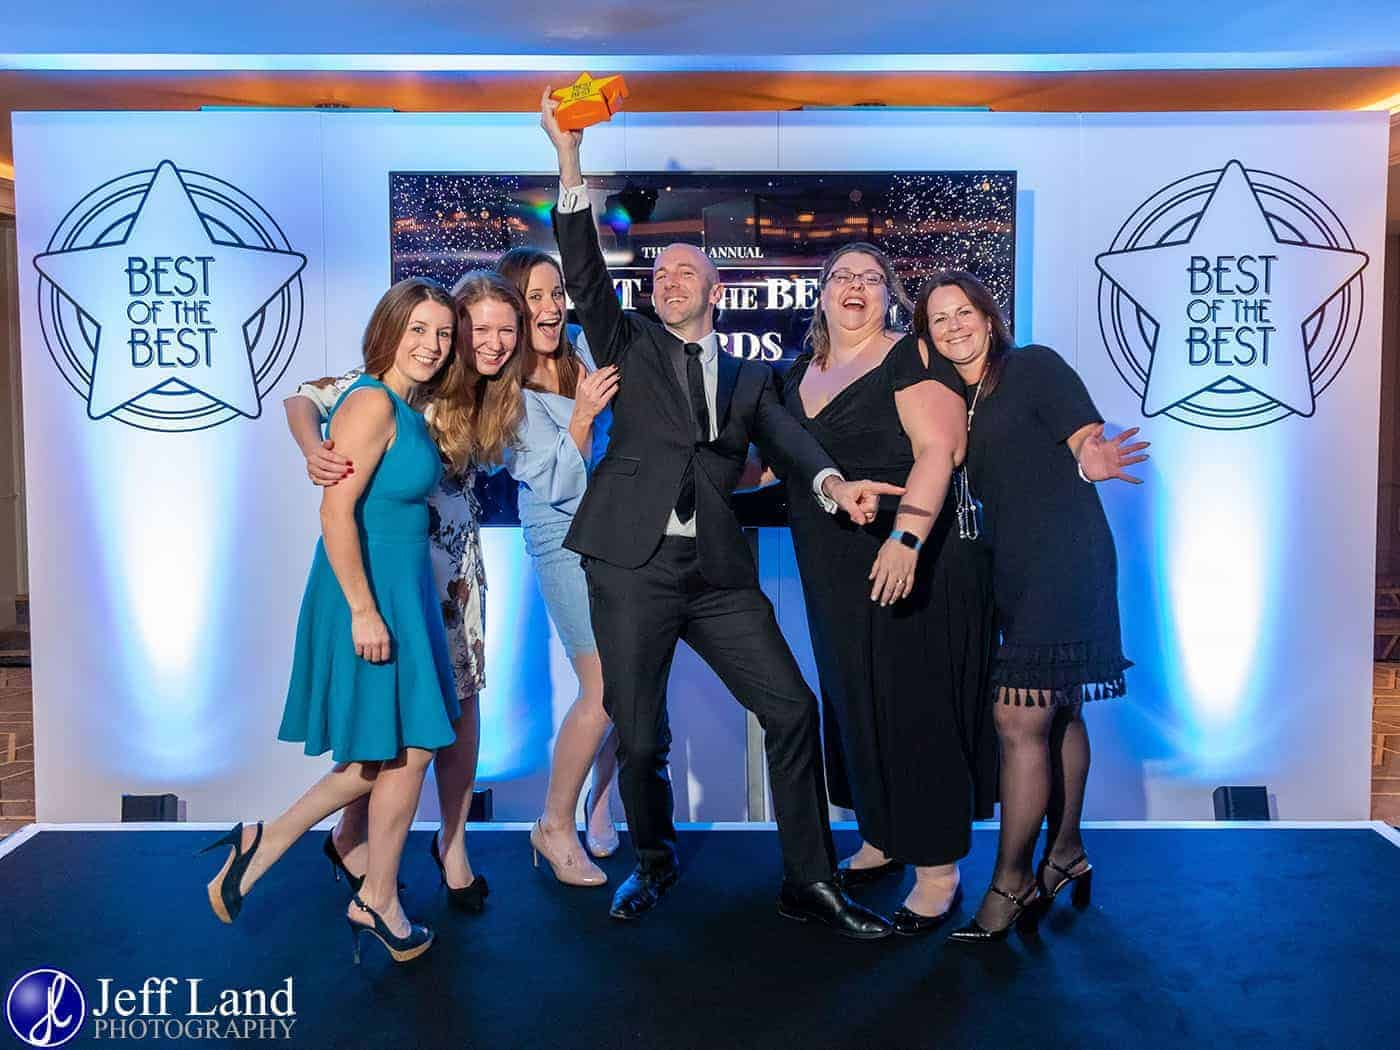 Corporate Event, Photographer, Stratford upon Avon, Warwickshire, Cotswold